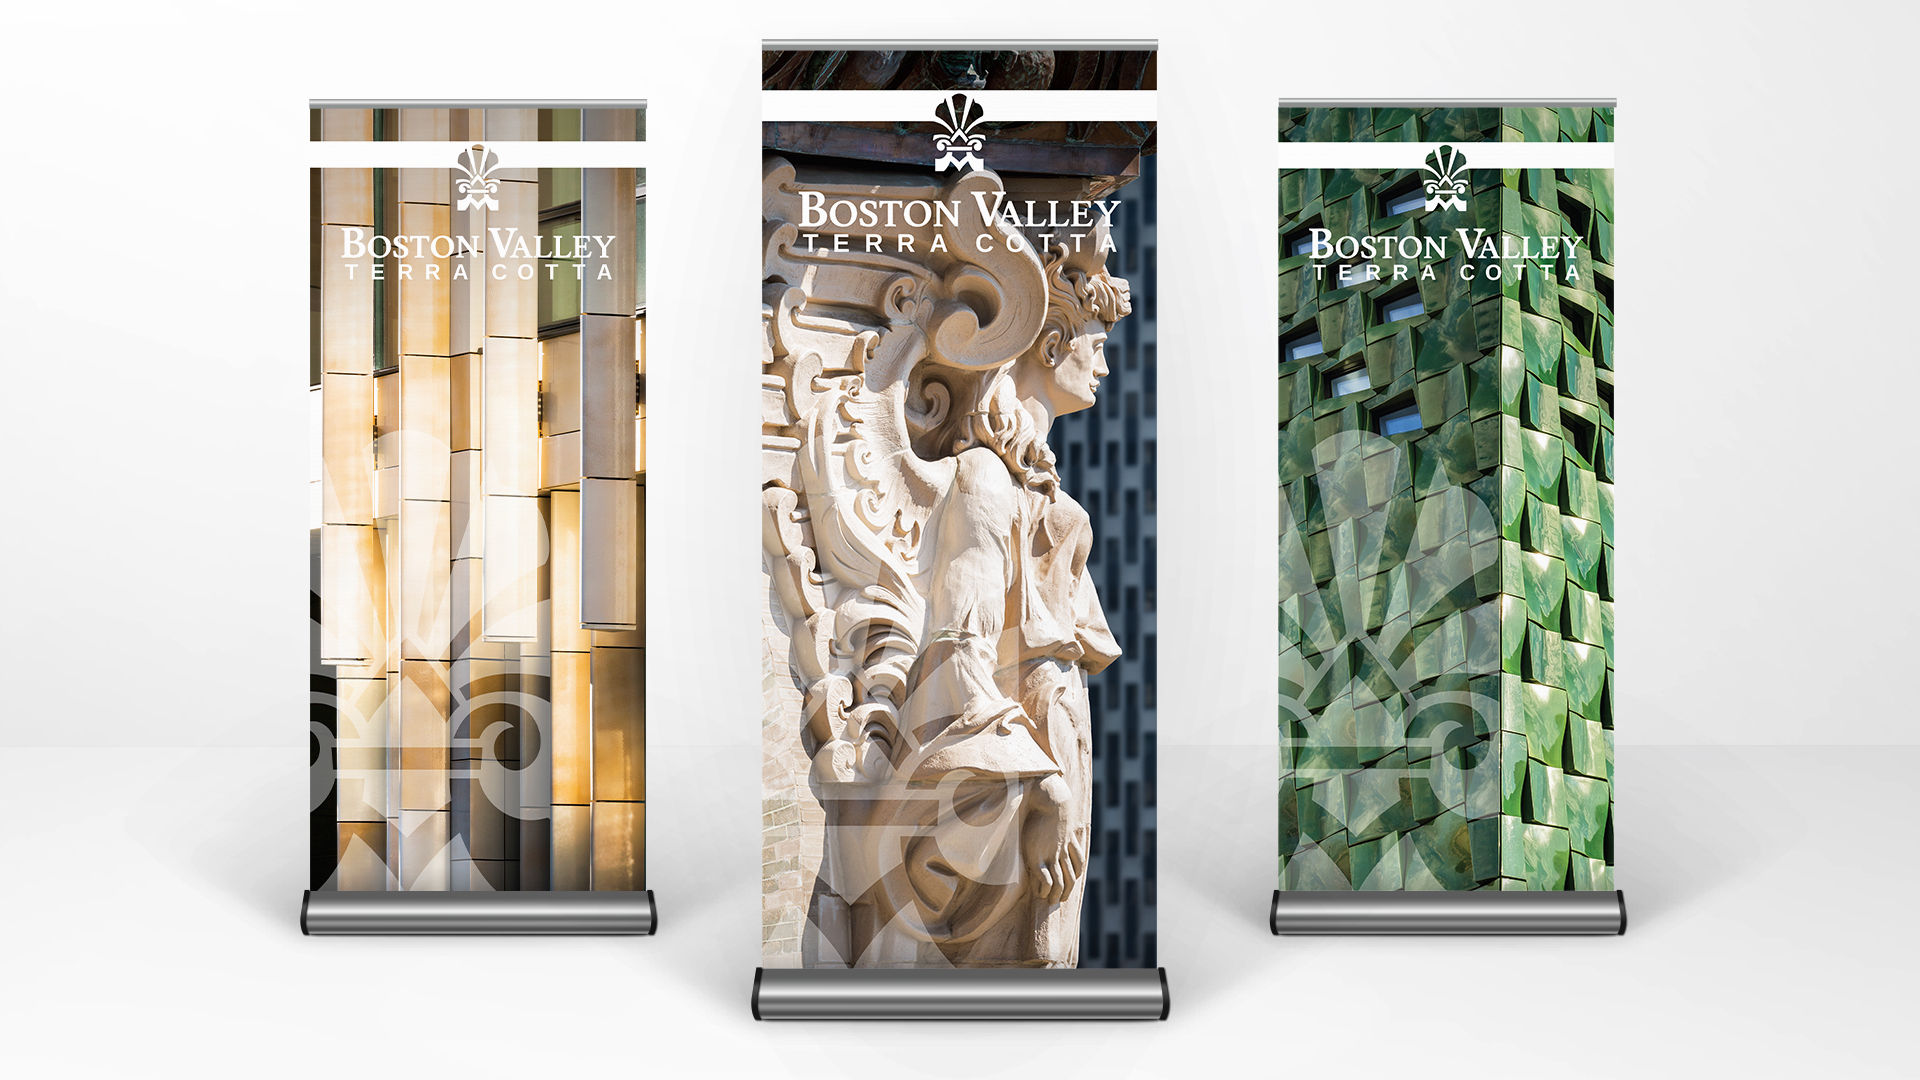 Promotional trade show banner design for an architectural terra cotta manufacturer